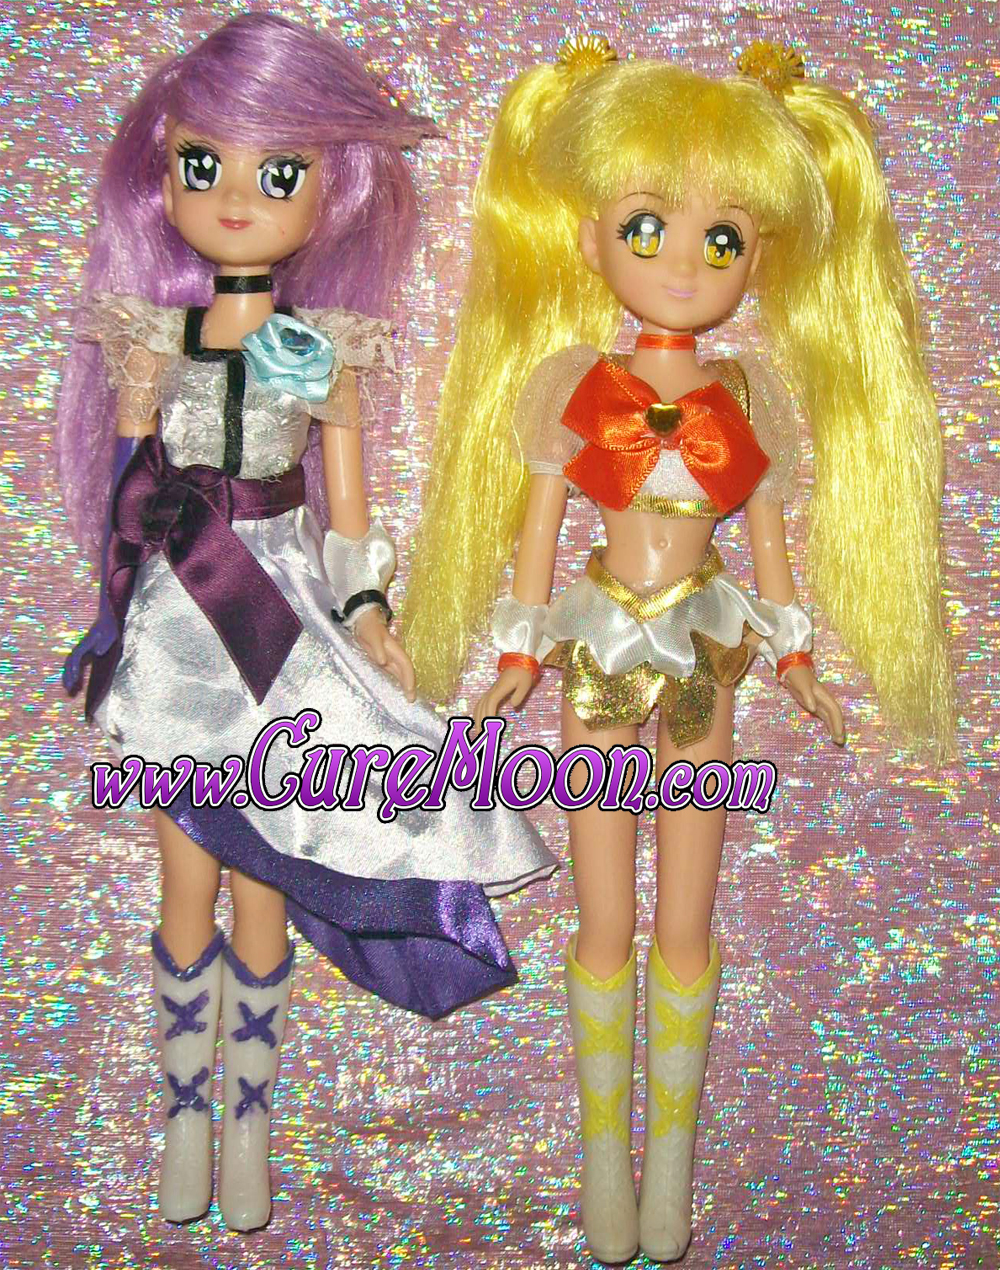 heart-catch-pretty-cure-sunshine-moonlight-bambola-bambole-doll-dolls-custom-ooak-handmade-bunnytsukino-curemoon